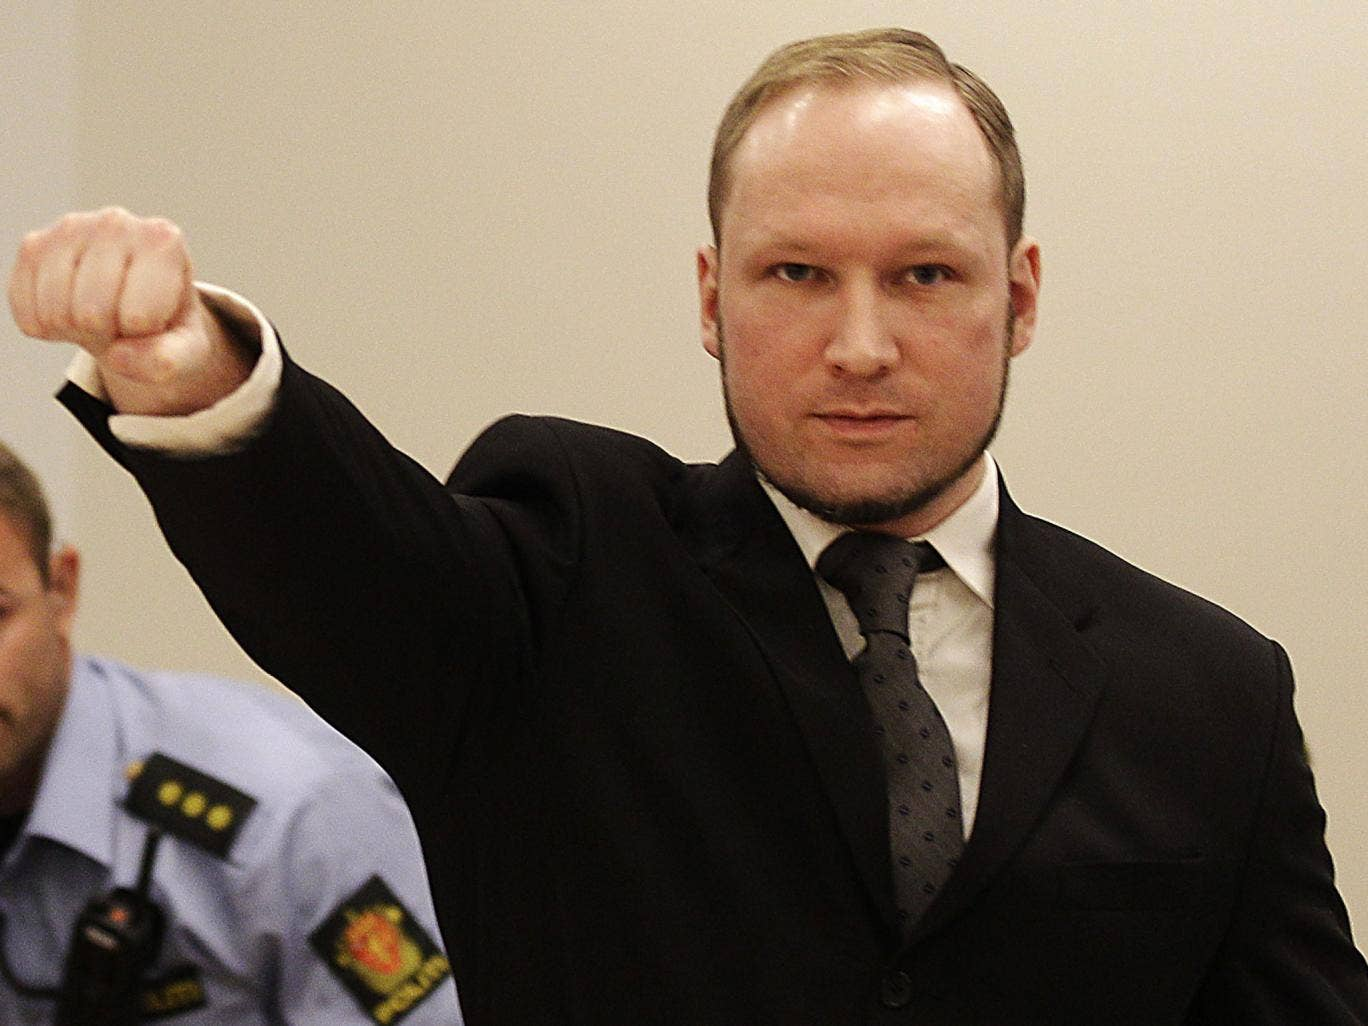 Anders Behring Breivik gives a Nazi salute in a Norwegian courtroom